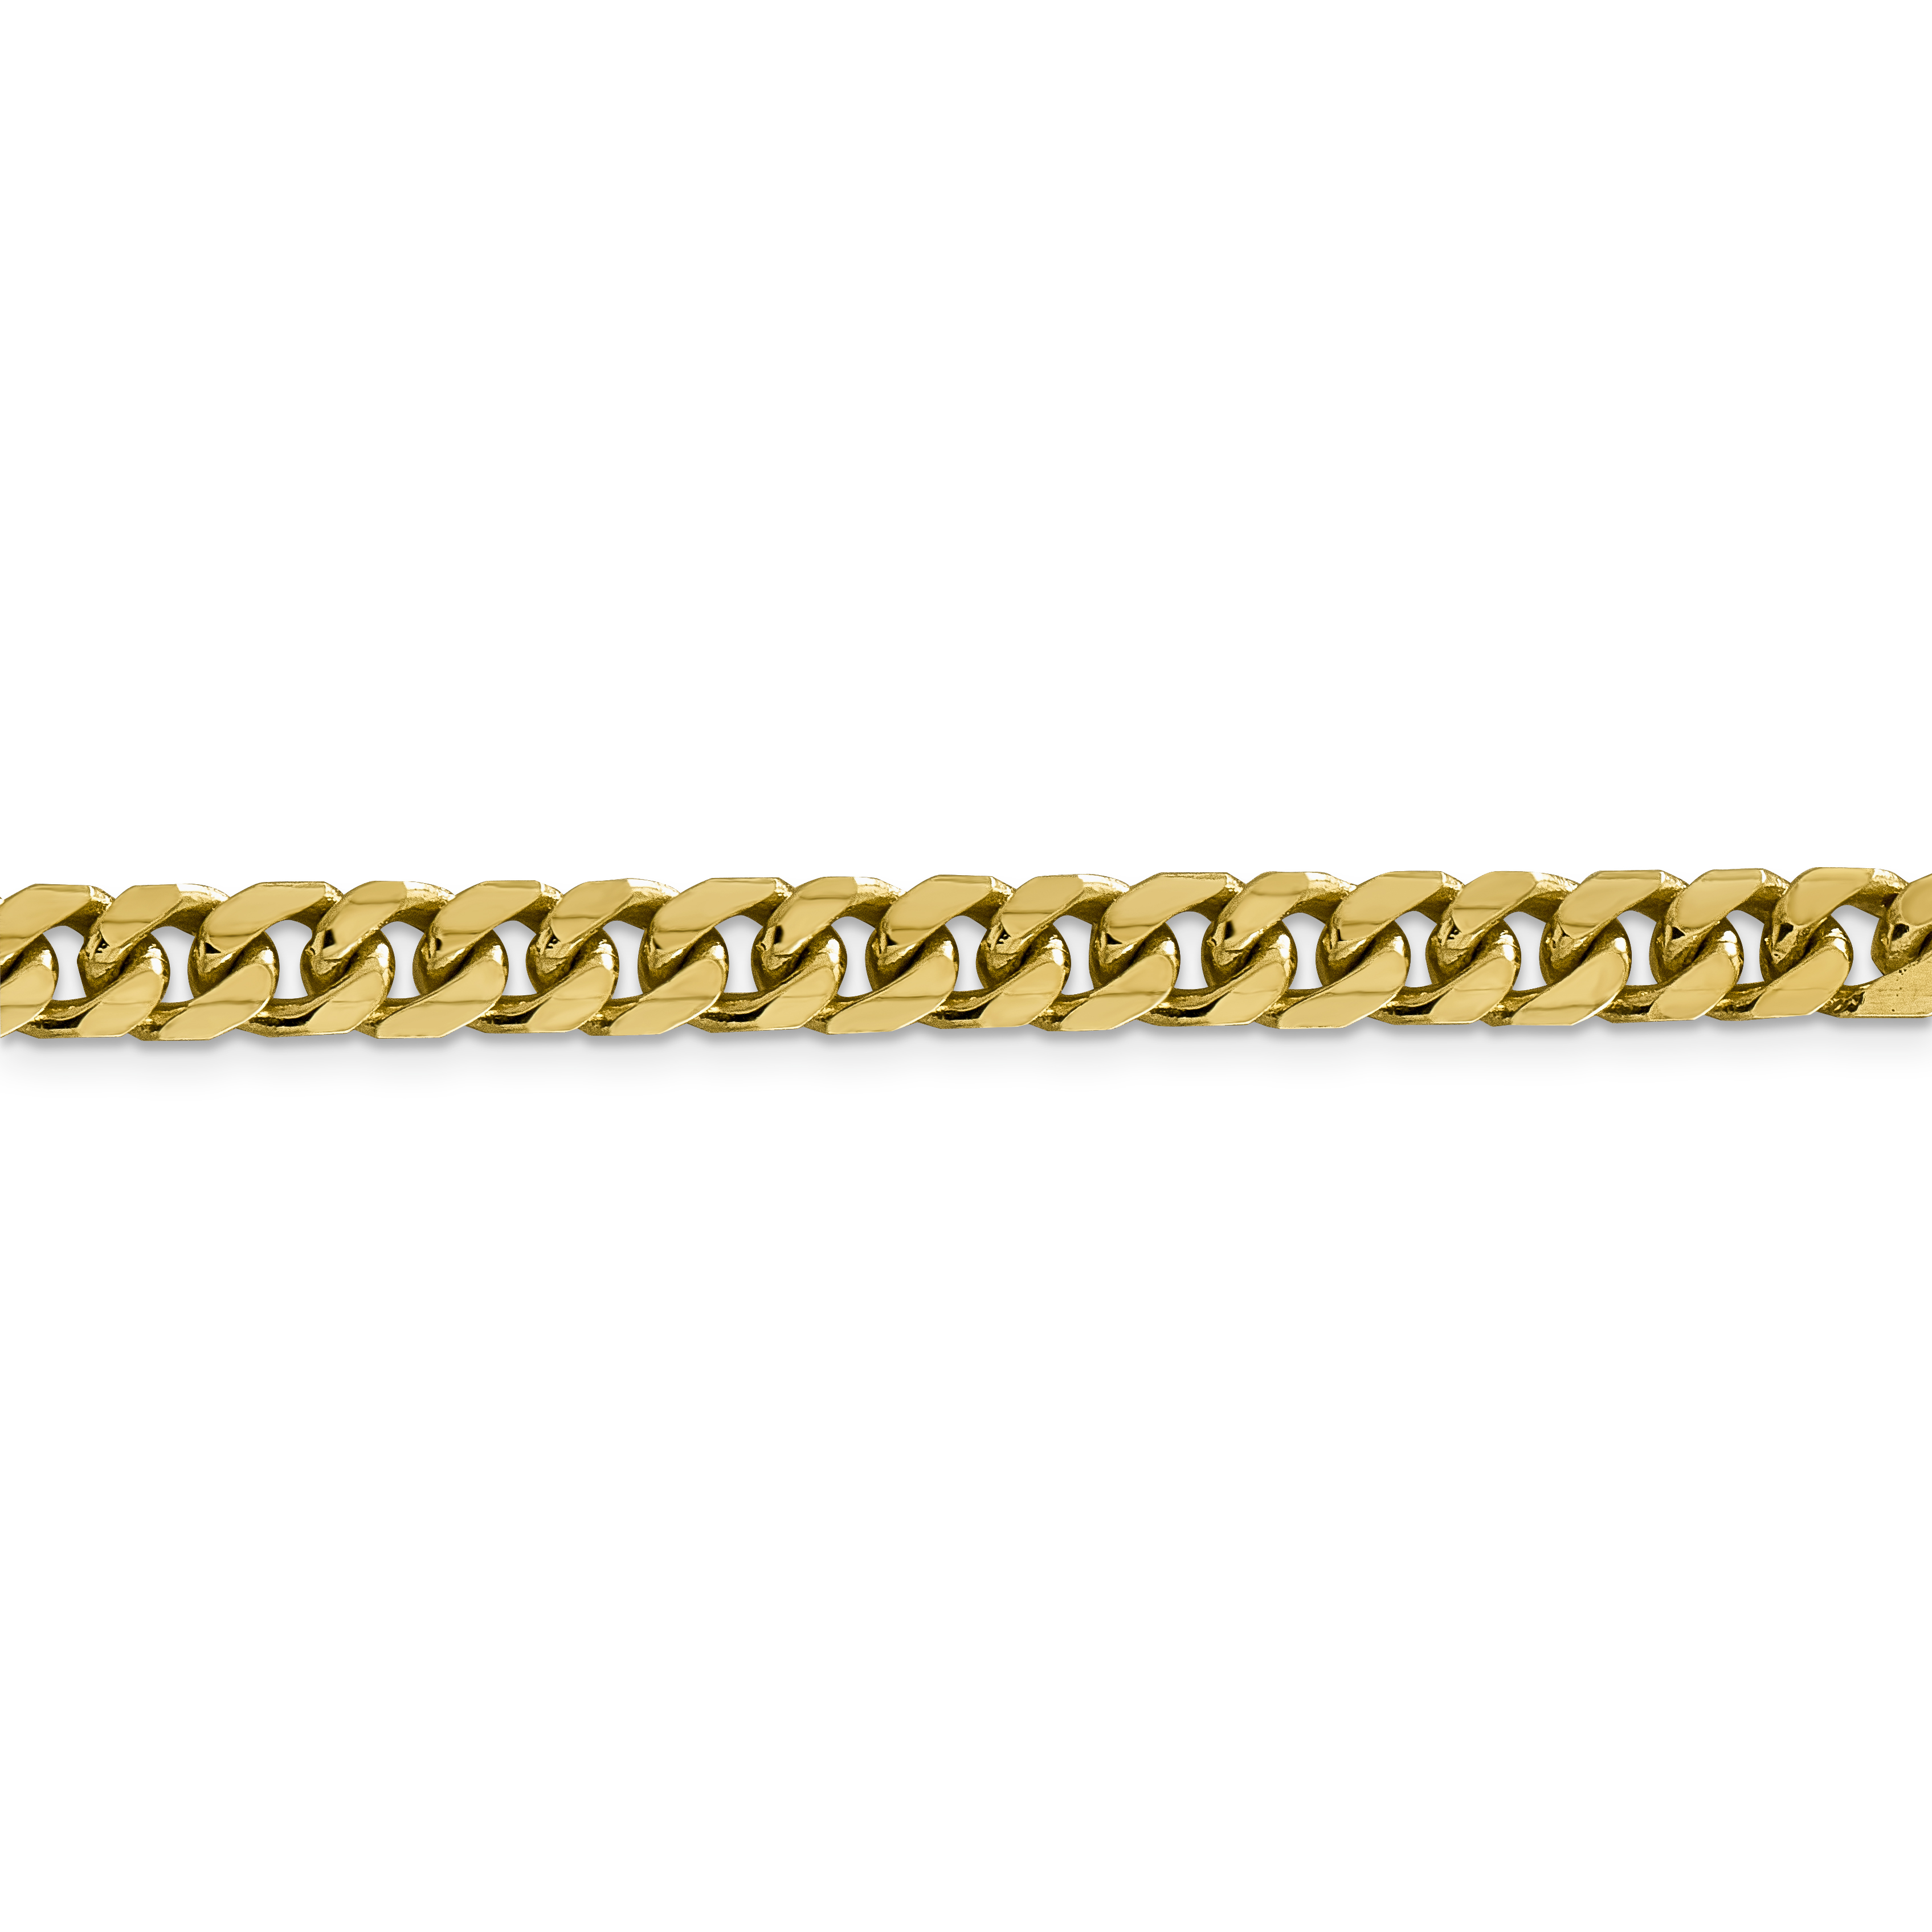 14k Yellow Gold 6.25mm Solid Miami Cuban Bracelet Chain 8 Inch Necklace Pendant Charm Curb Domed Fine Jewelry Gifts For Women For Her - image 1 de 4